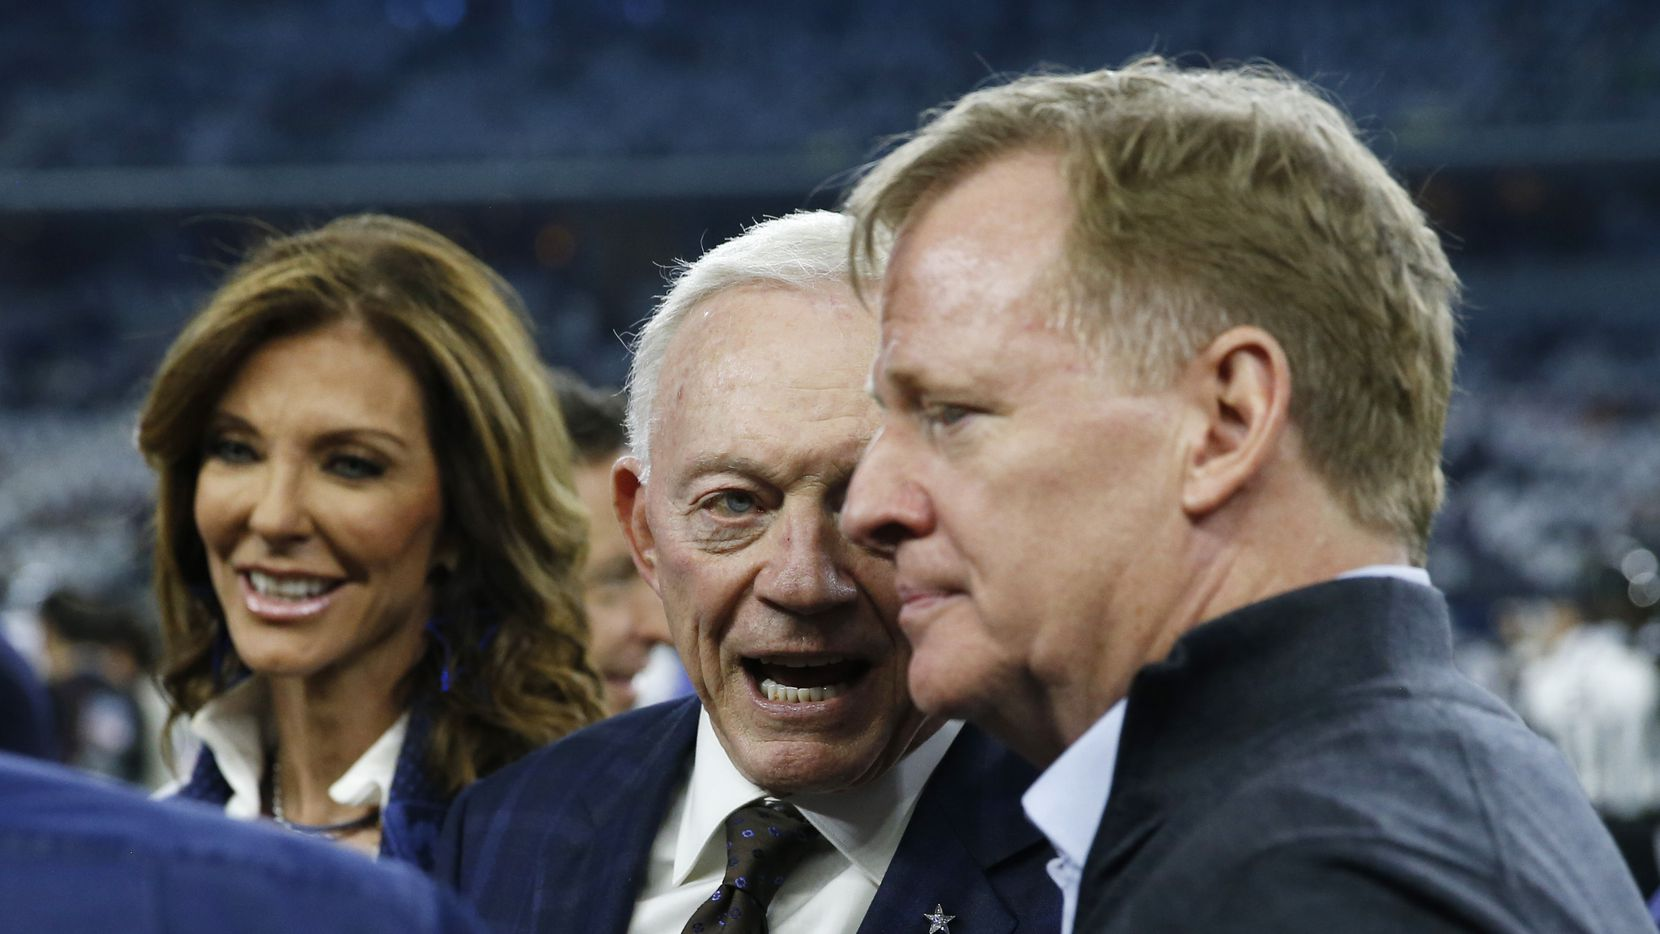 Dallas Cowboys Jerry Jones talks with NFL commissioner Roger Goodell and Dallas Cowboys Charlotte Jones before a NFL playoff game at AT&T Stadium in Arlington, on Saturday, January 5, 2019.